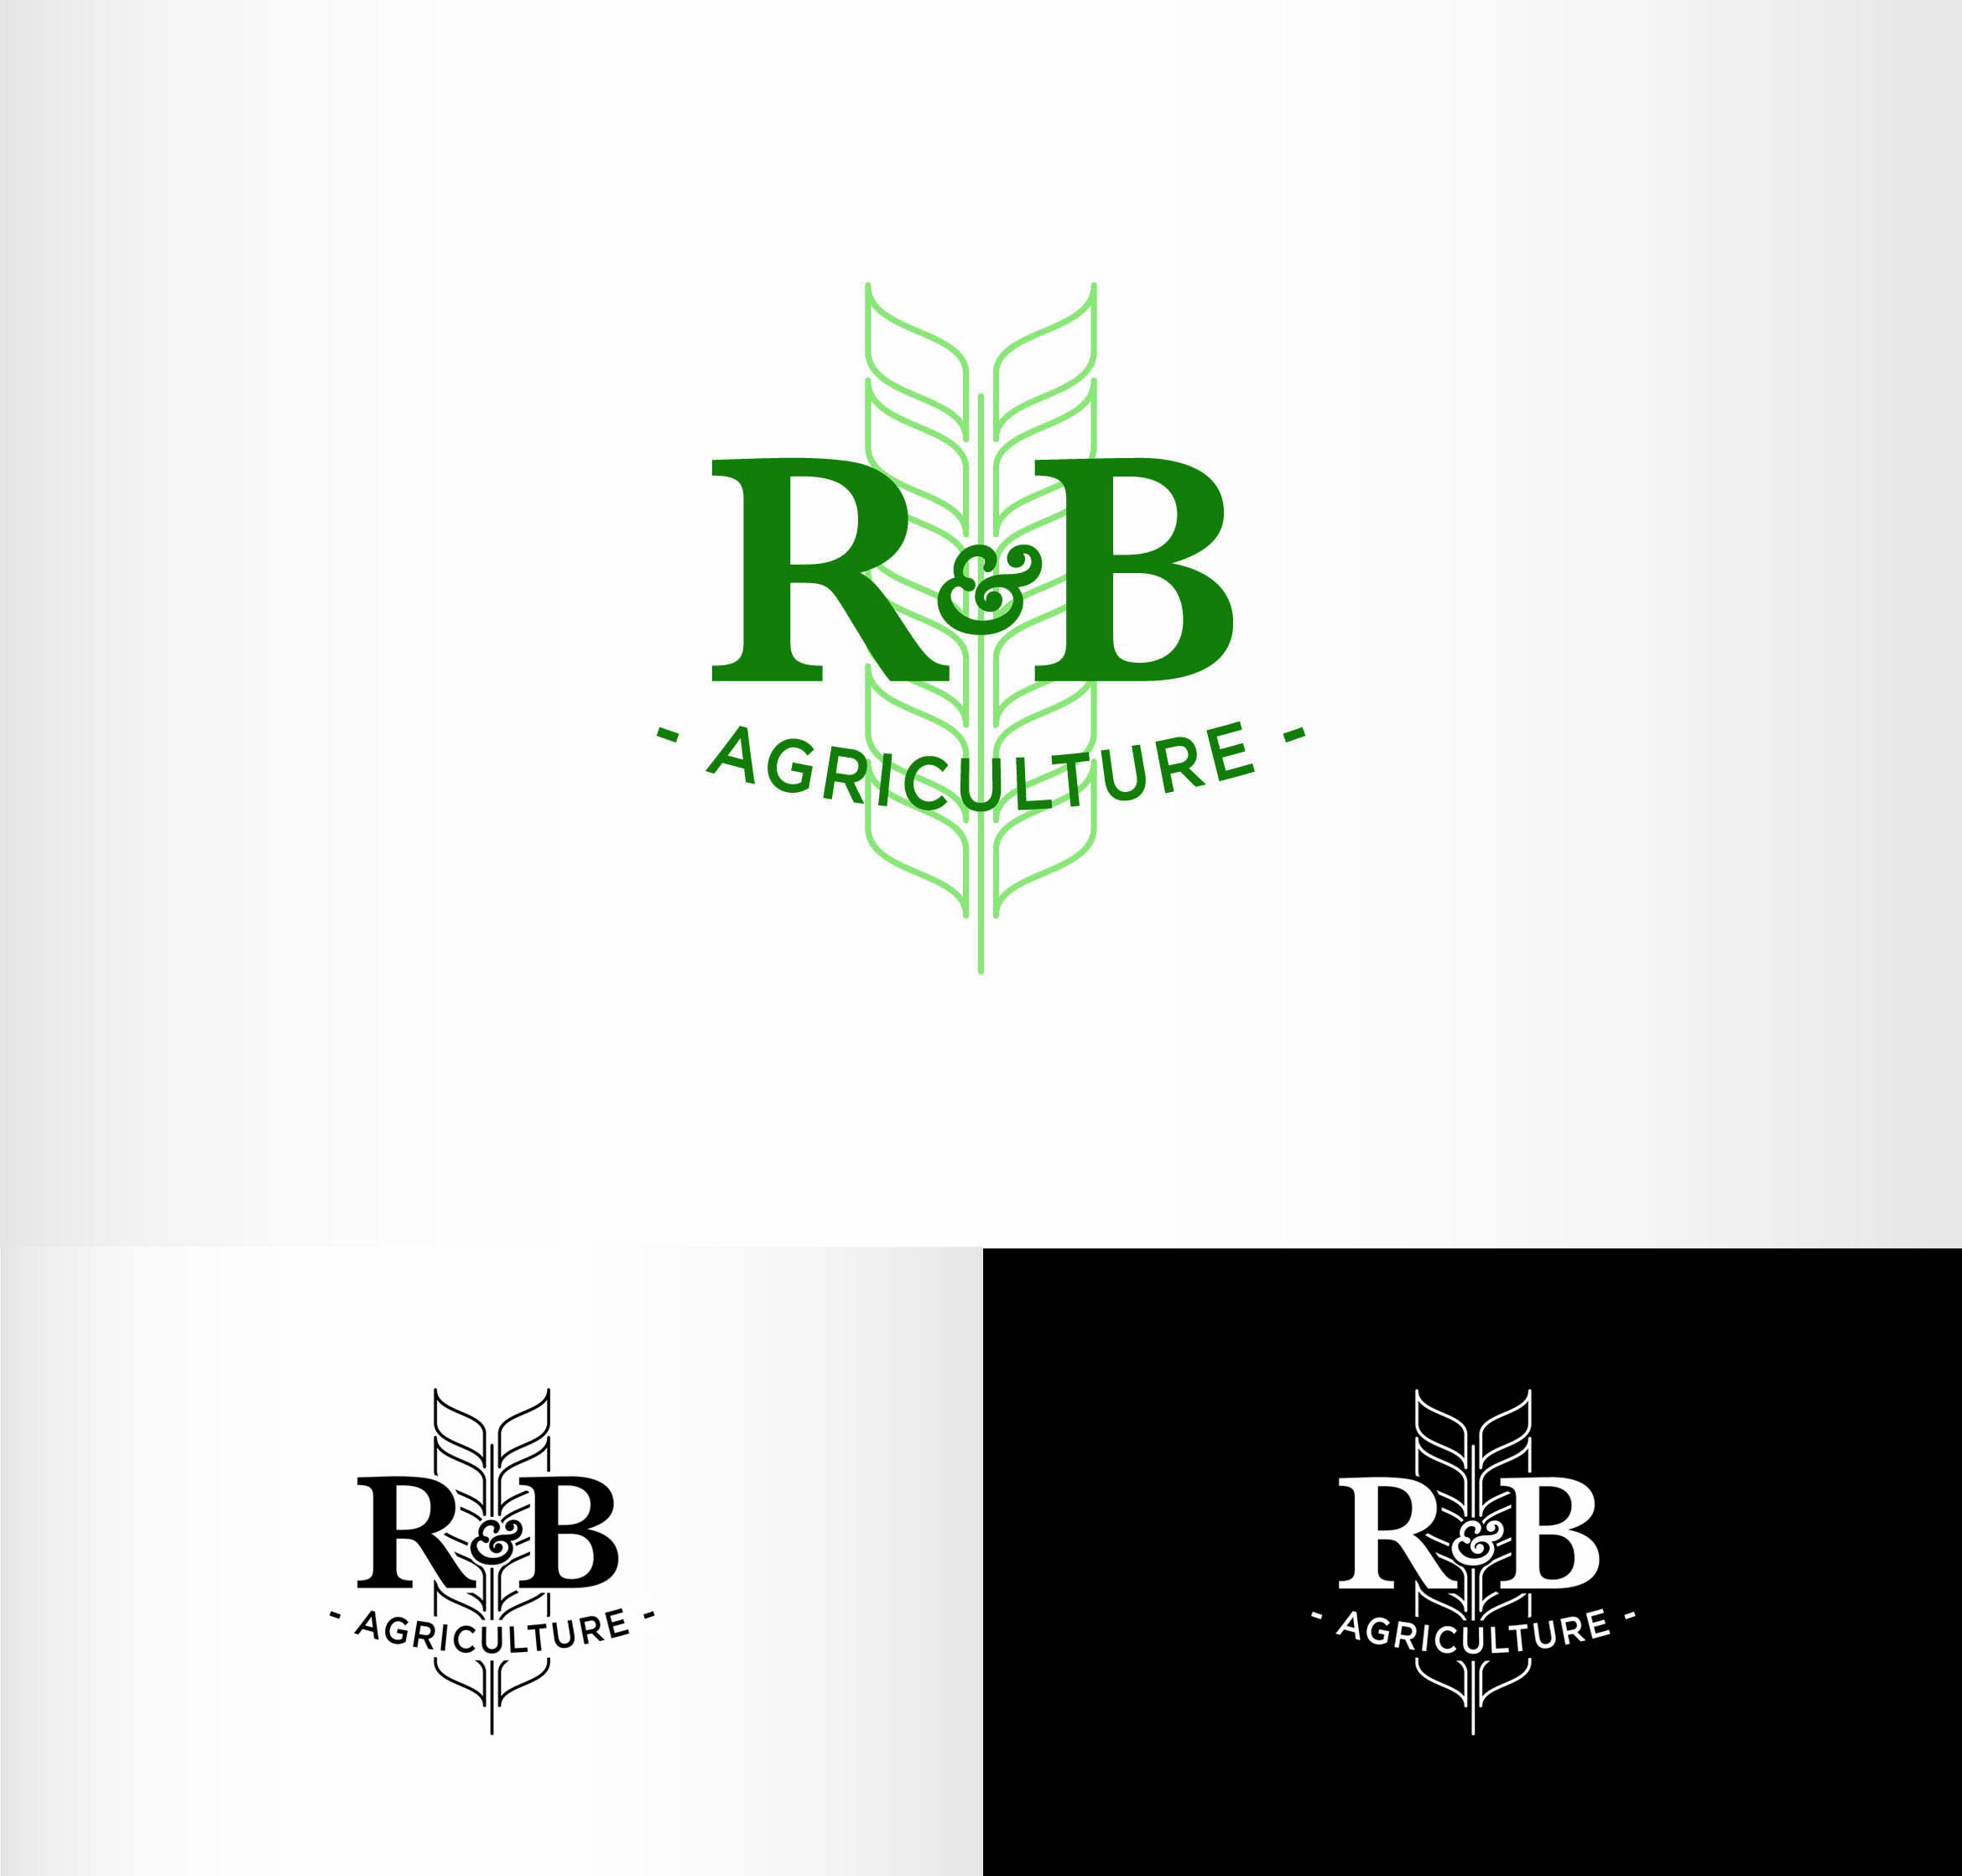 Logo Design by Andrés González - Entry No. 142 in the Logo Design Contest Captivating Logo Design for R & B Agriculture.